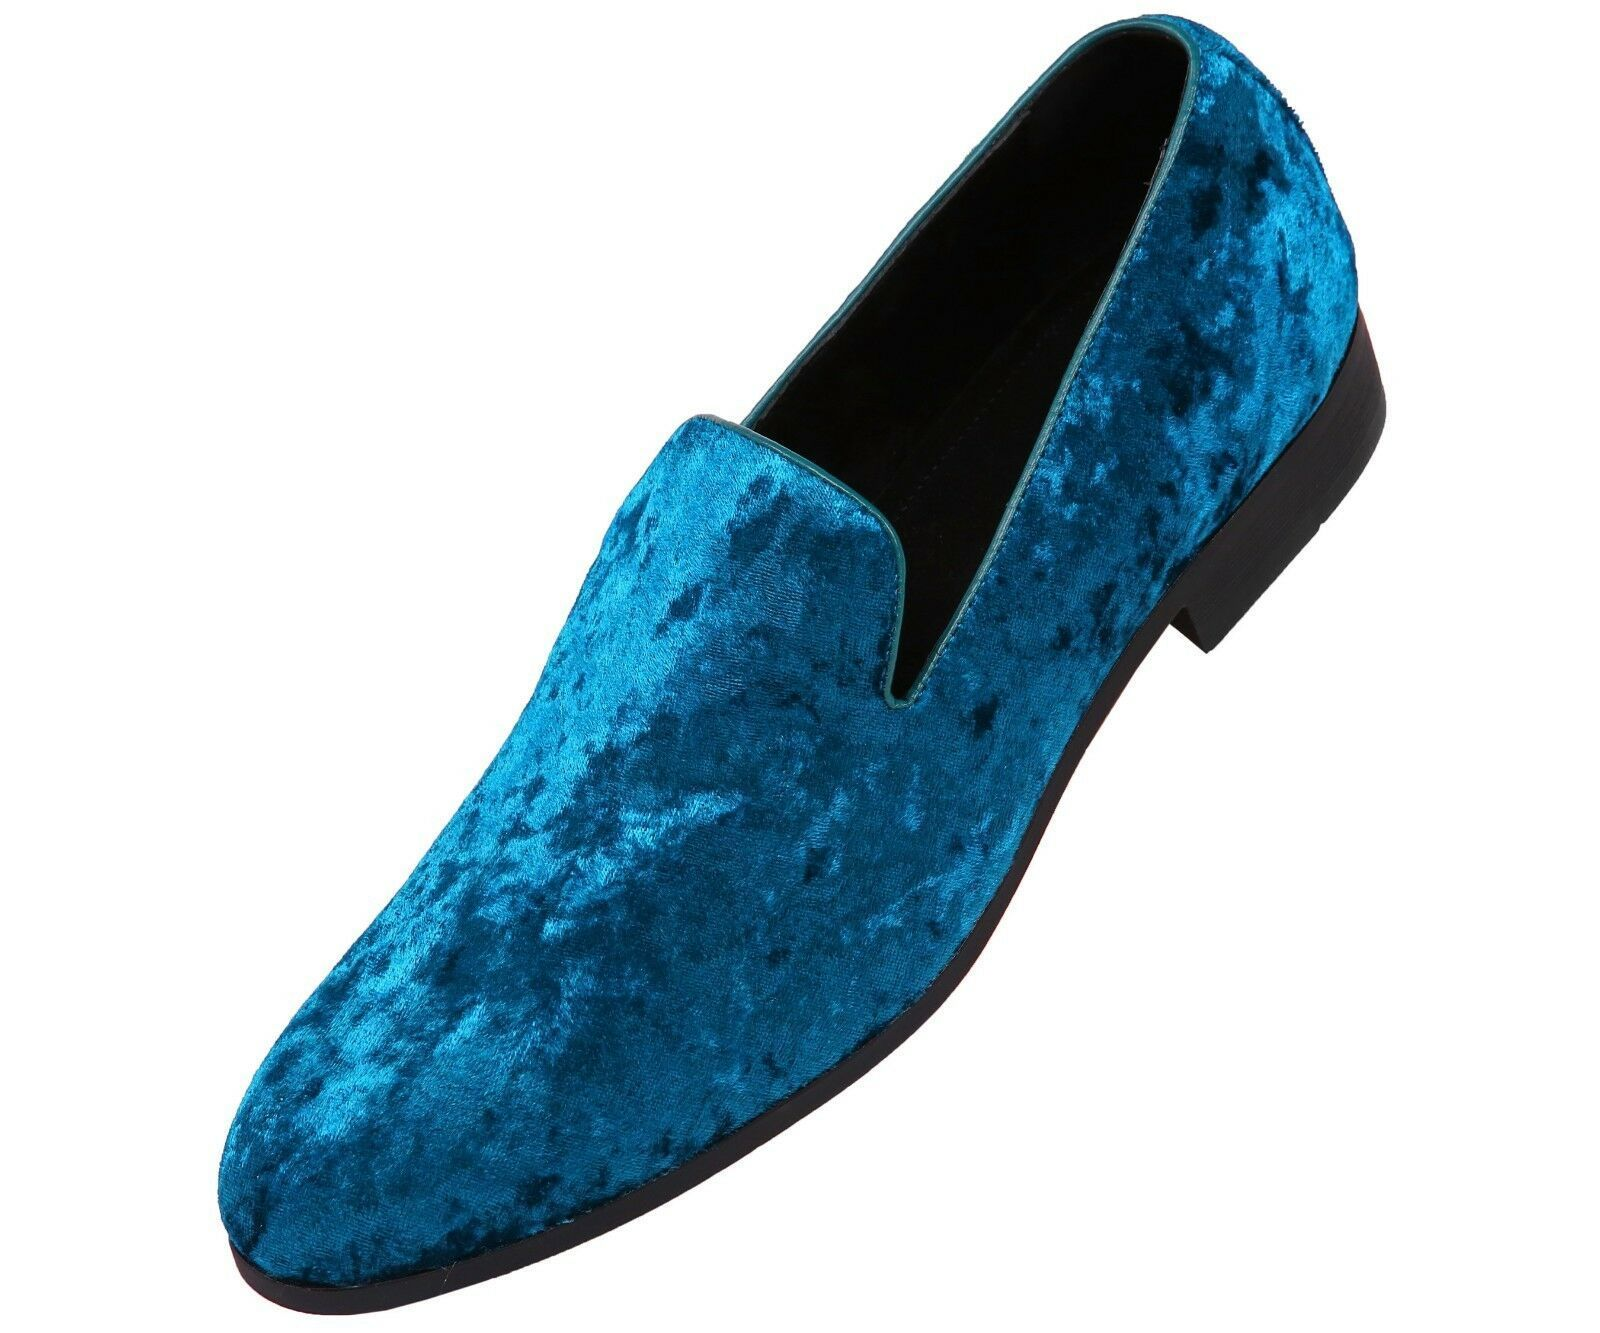 Handmade Blue Rounded Toe Party Wear Stylish Men Moccasin Loafer Slip Ons Shoes